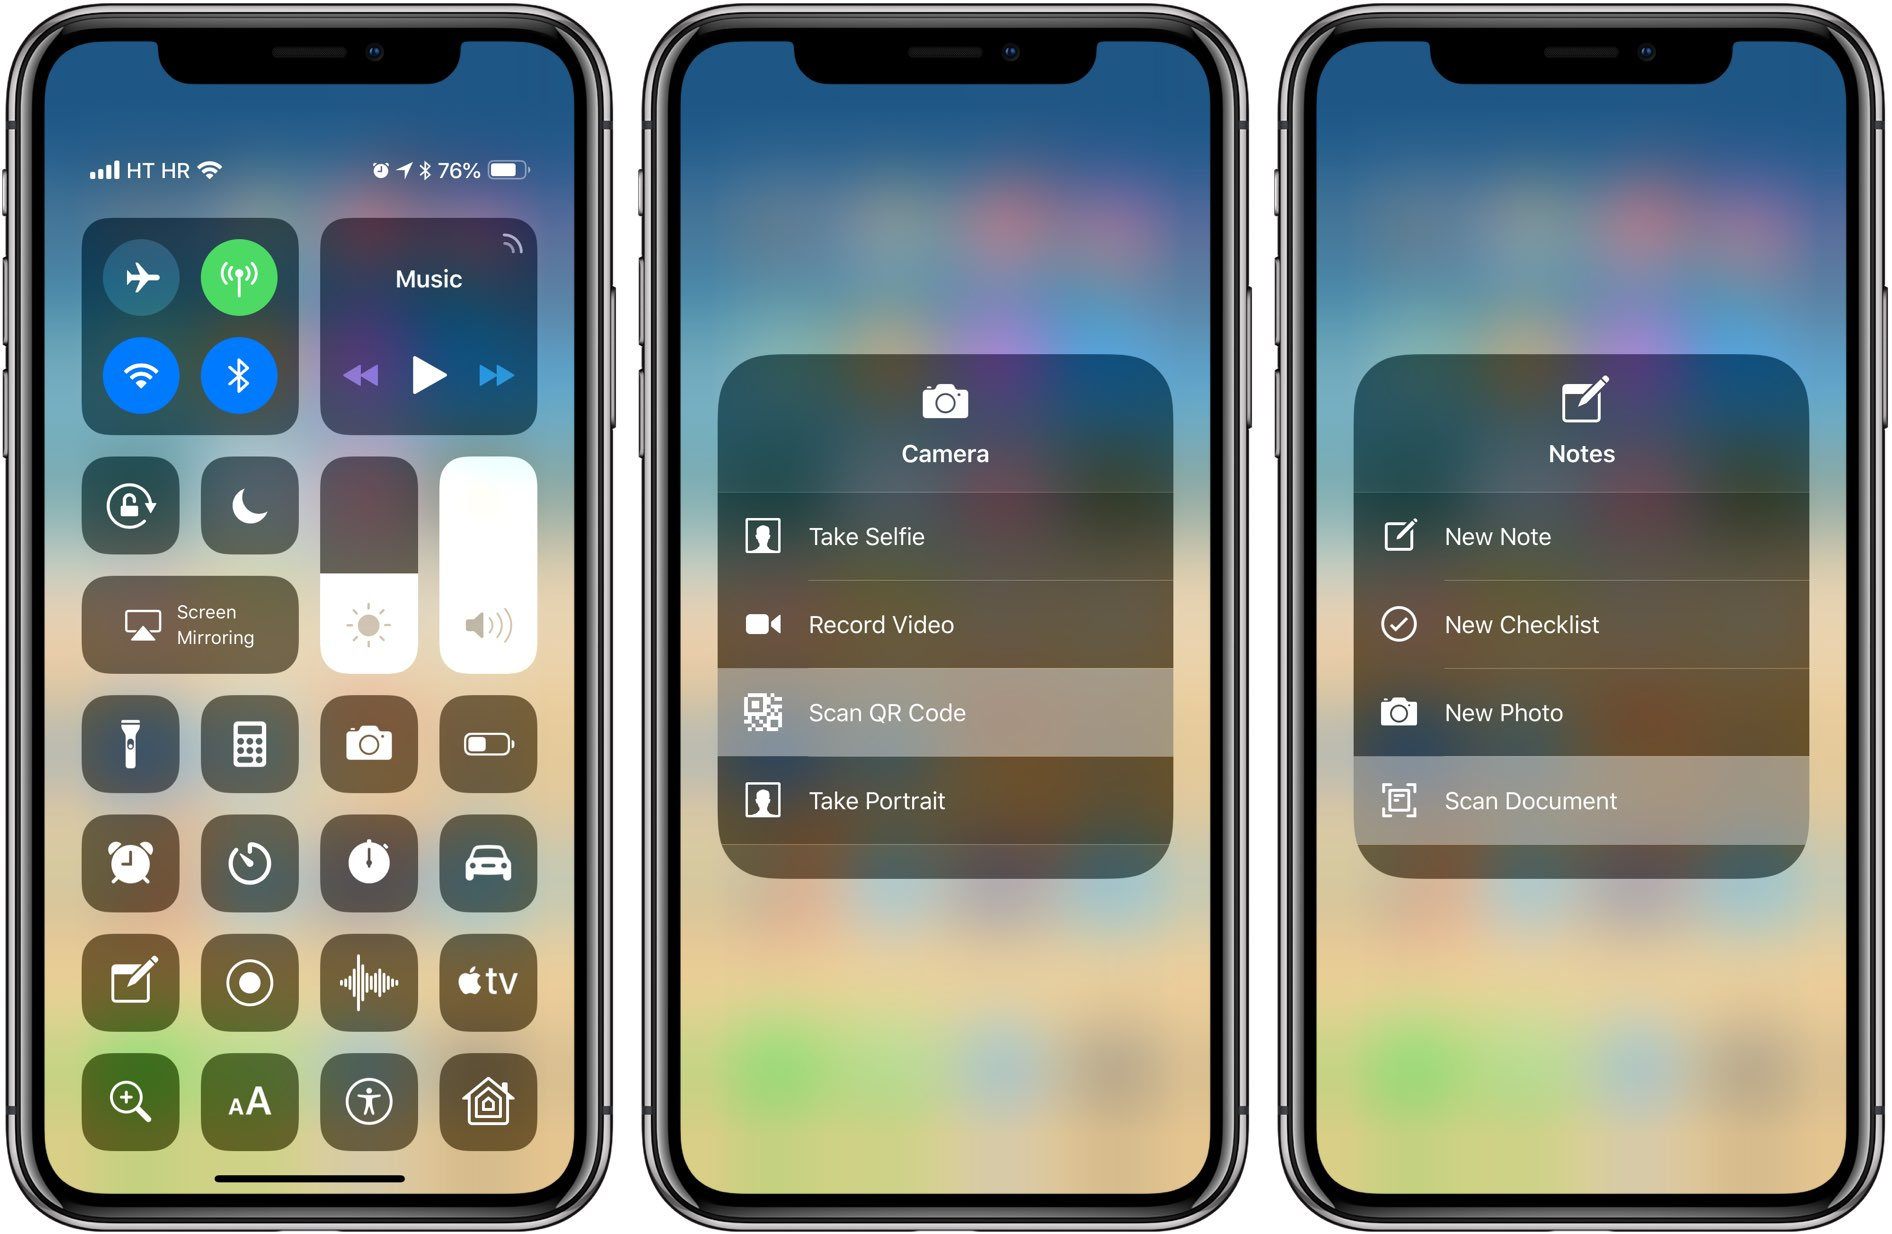 iOS 12's new 3D Touch shortcuts for Notes and Camera can be accessed through Control Center as well